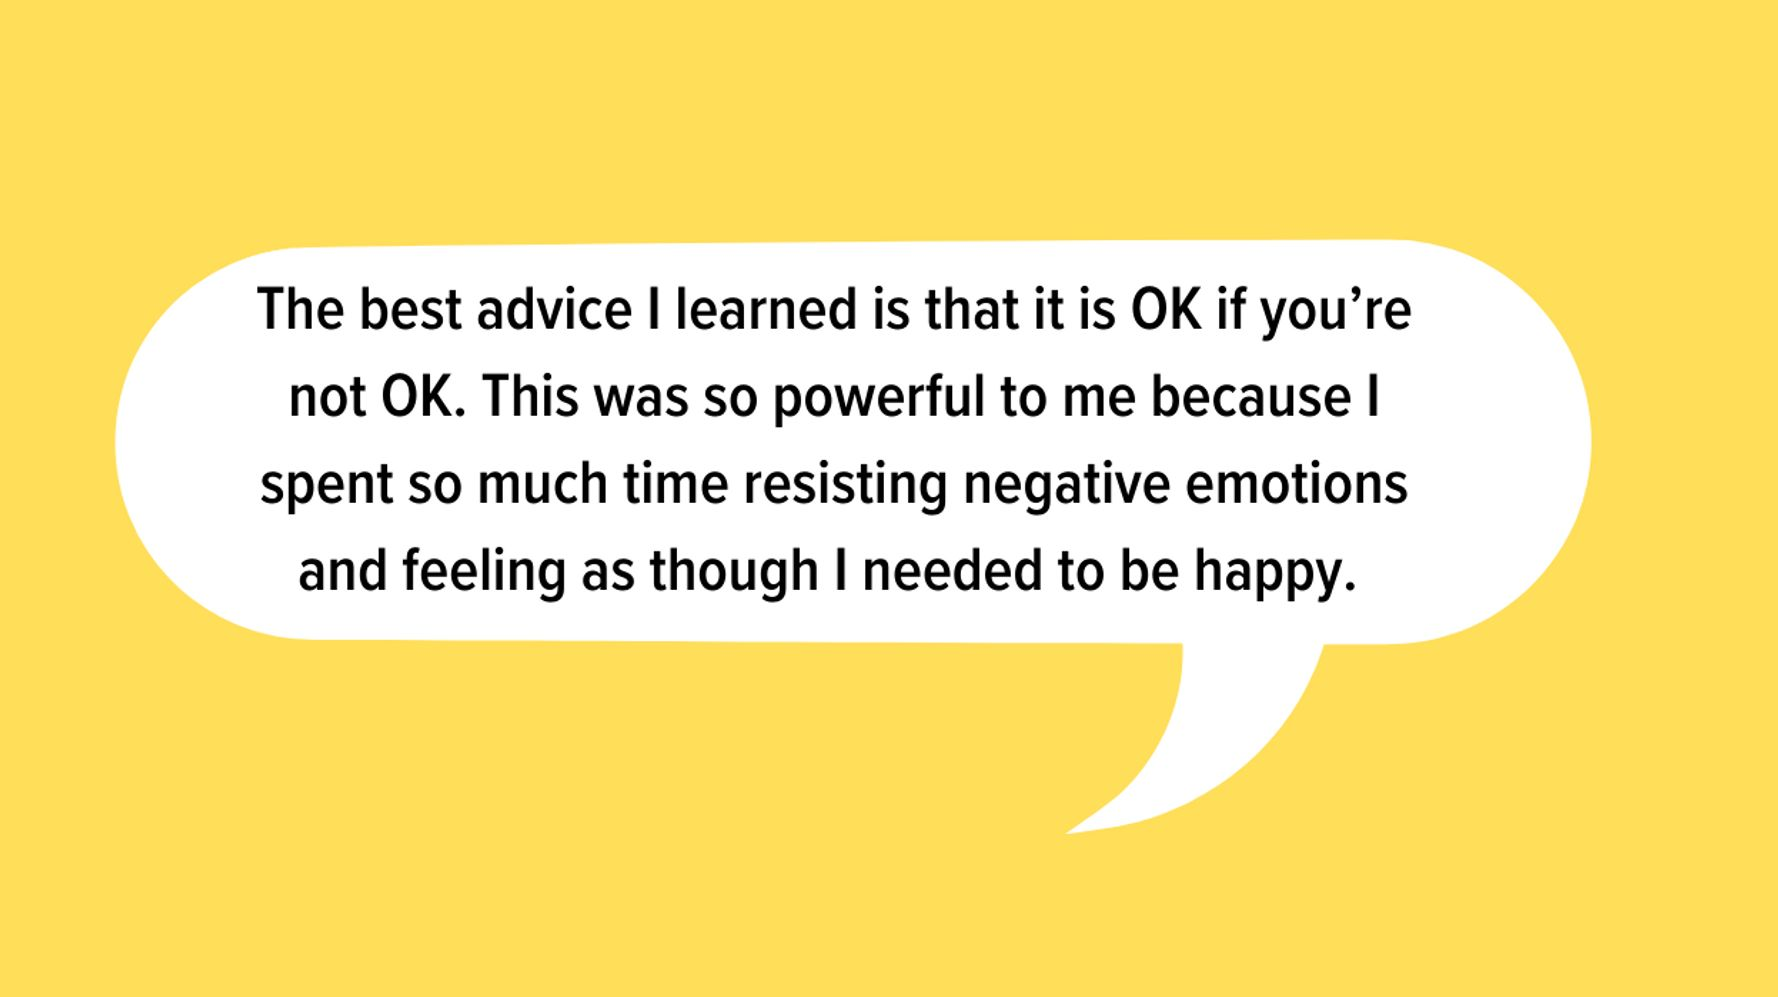 11 Golden Pieces Of Happiness Advice People Learned In Therapy